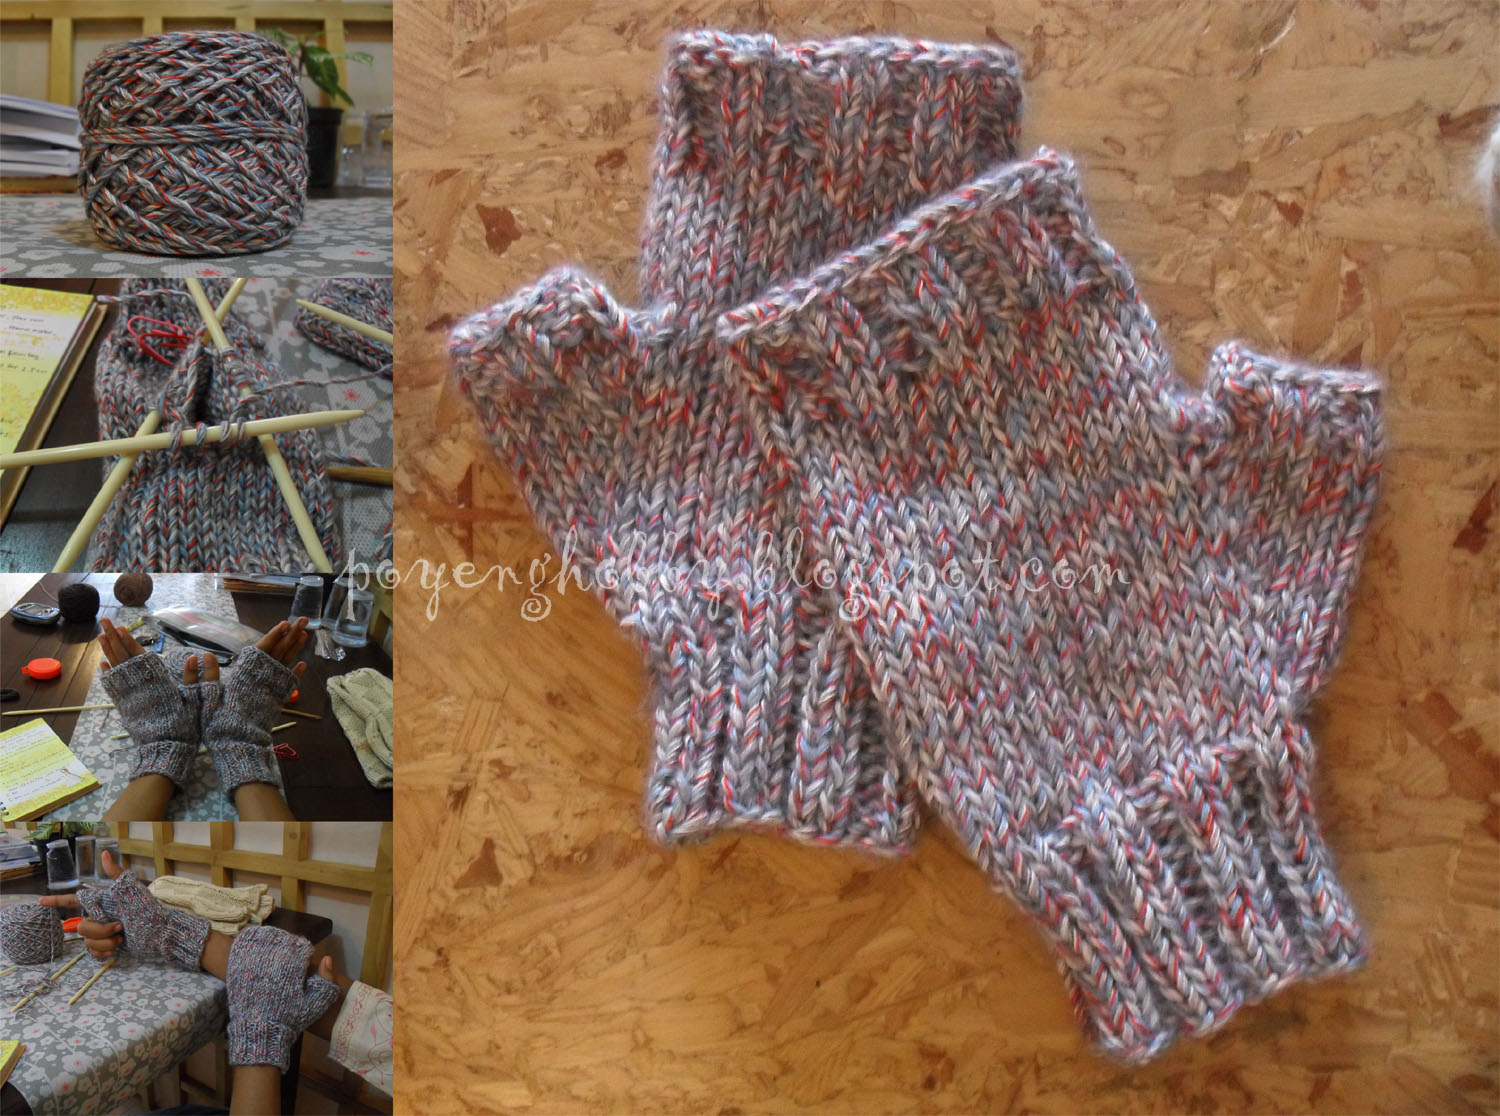 Free Knitting Patterns For Baby Clothes : FREE FINGERLESS GLOVE KNITTING PATTERNS FREE PATTERNS